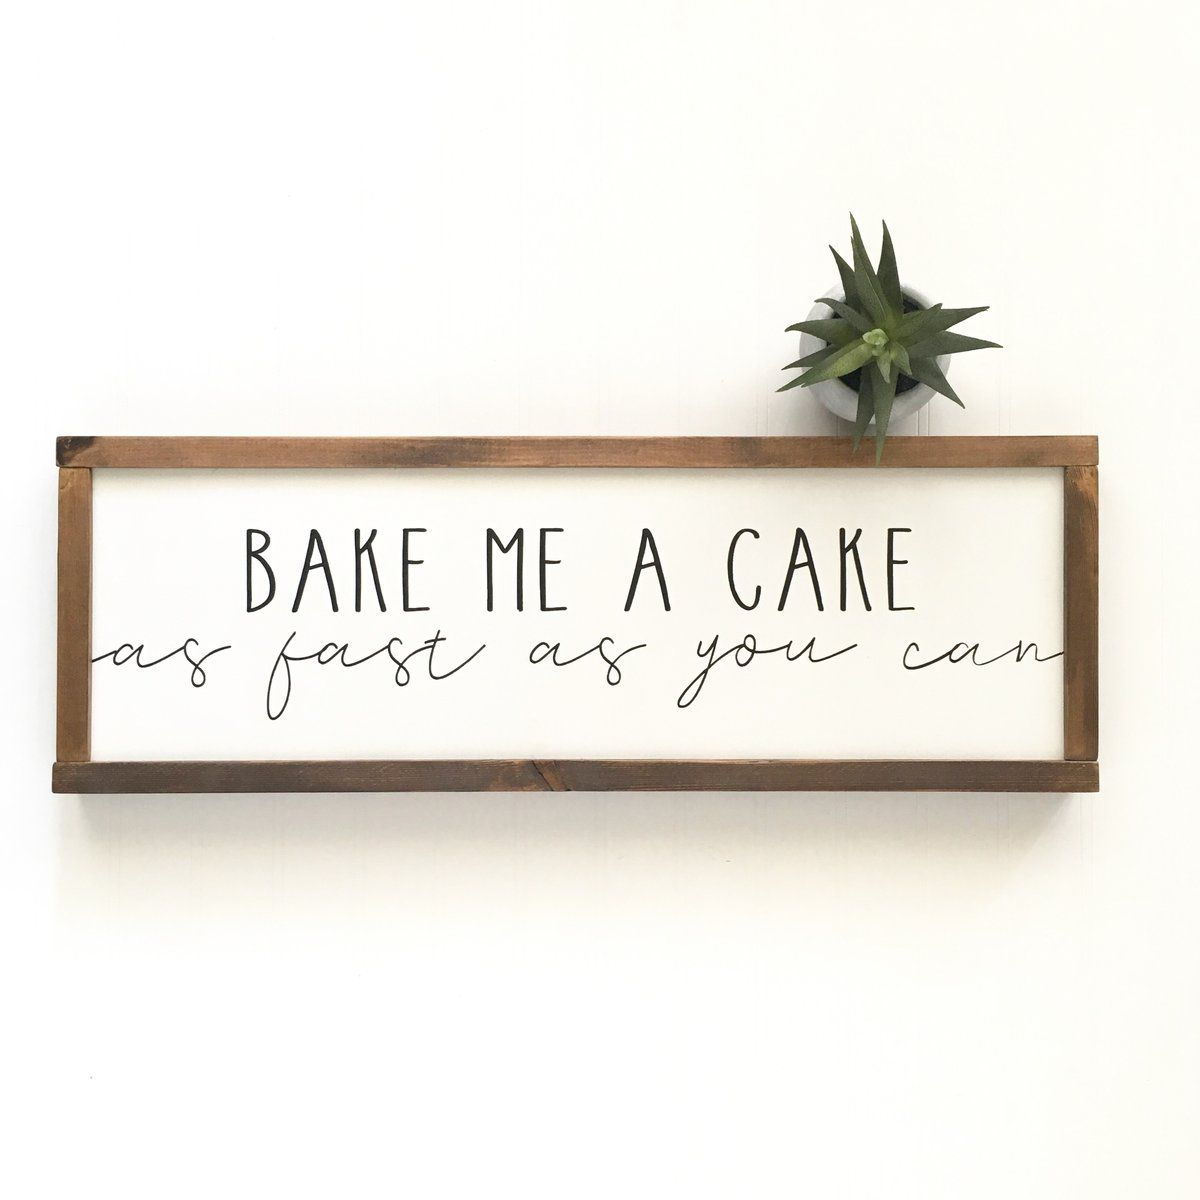 Bake Me A Cake Sign In 2020 Handmade Home Decor Country